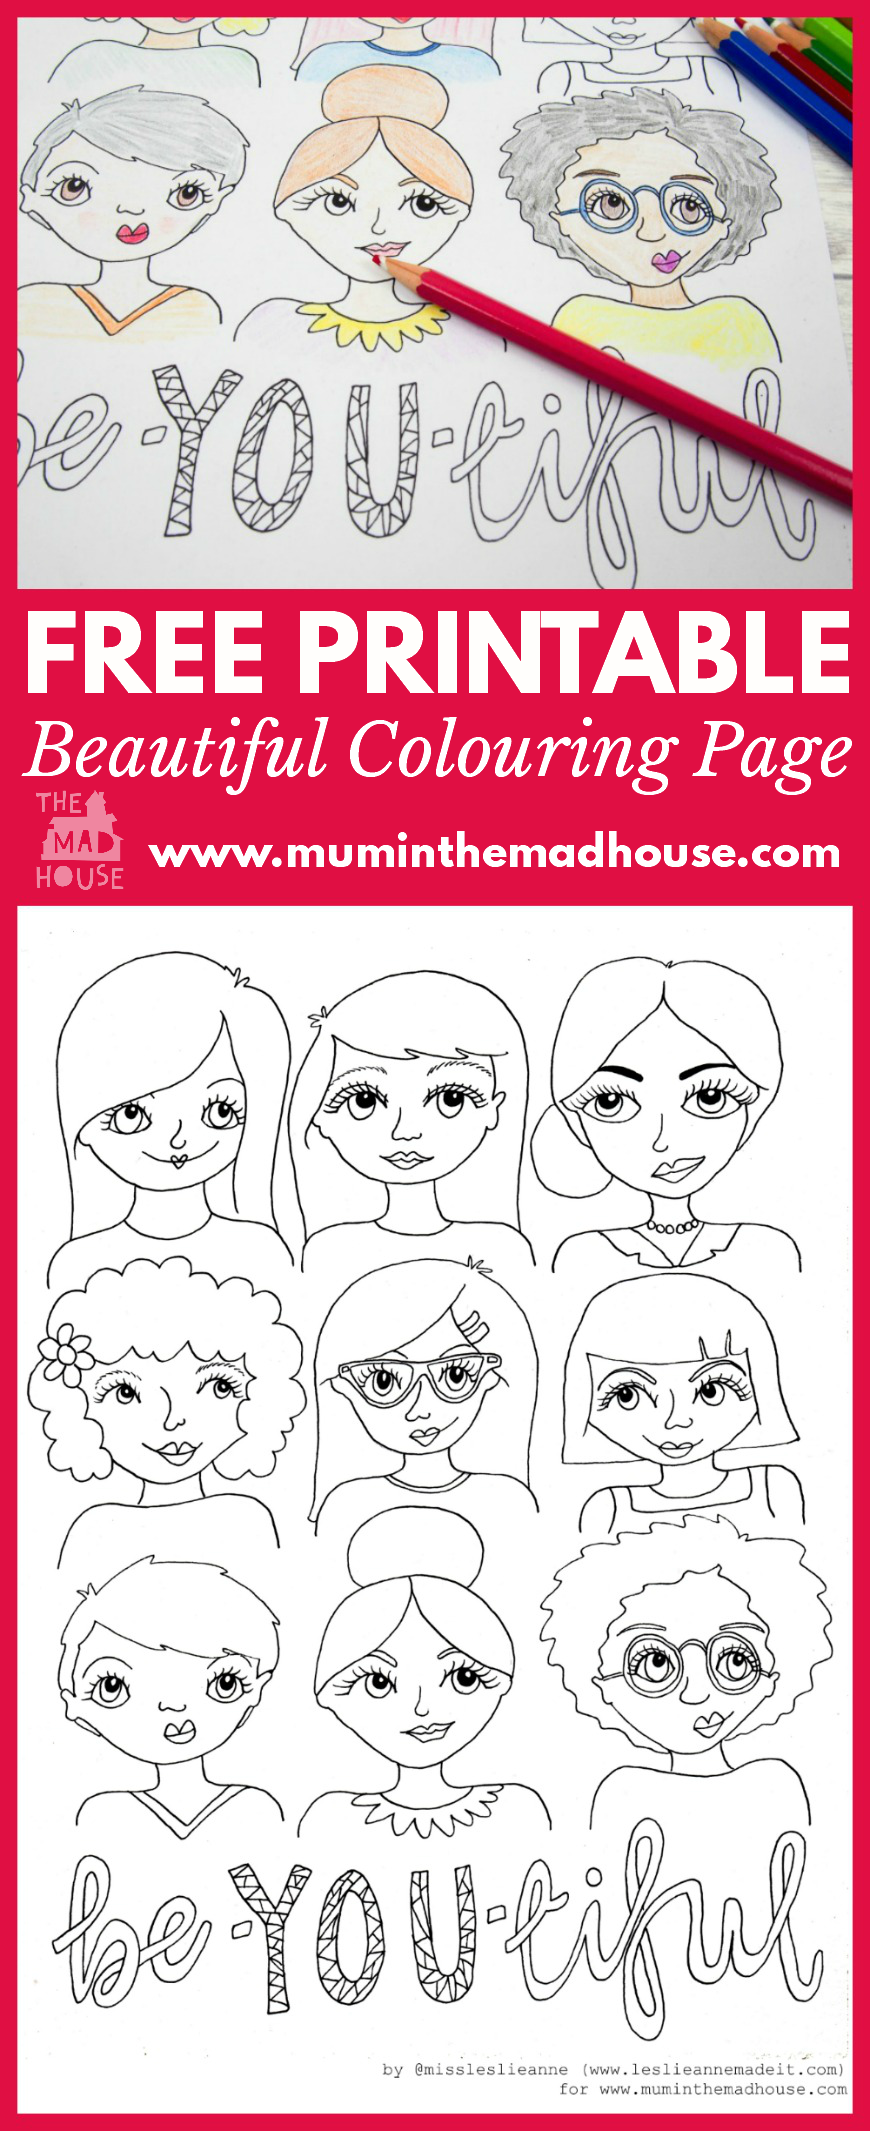 CLICK HERE TO DOWNLOAD YOUR FREE BE YOU TIFUL COLOURING PAGE